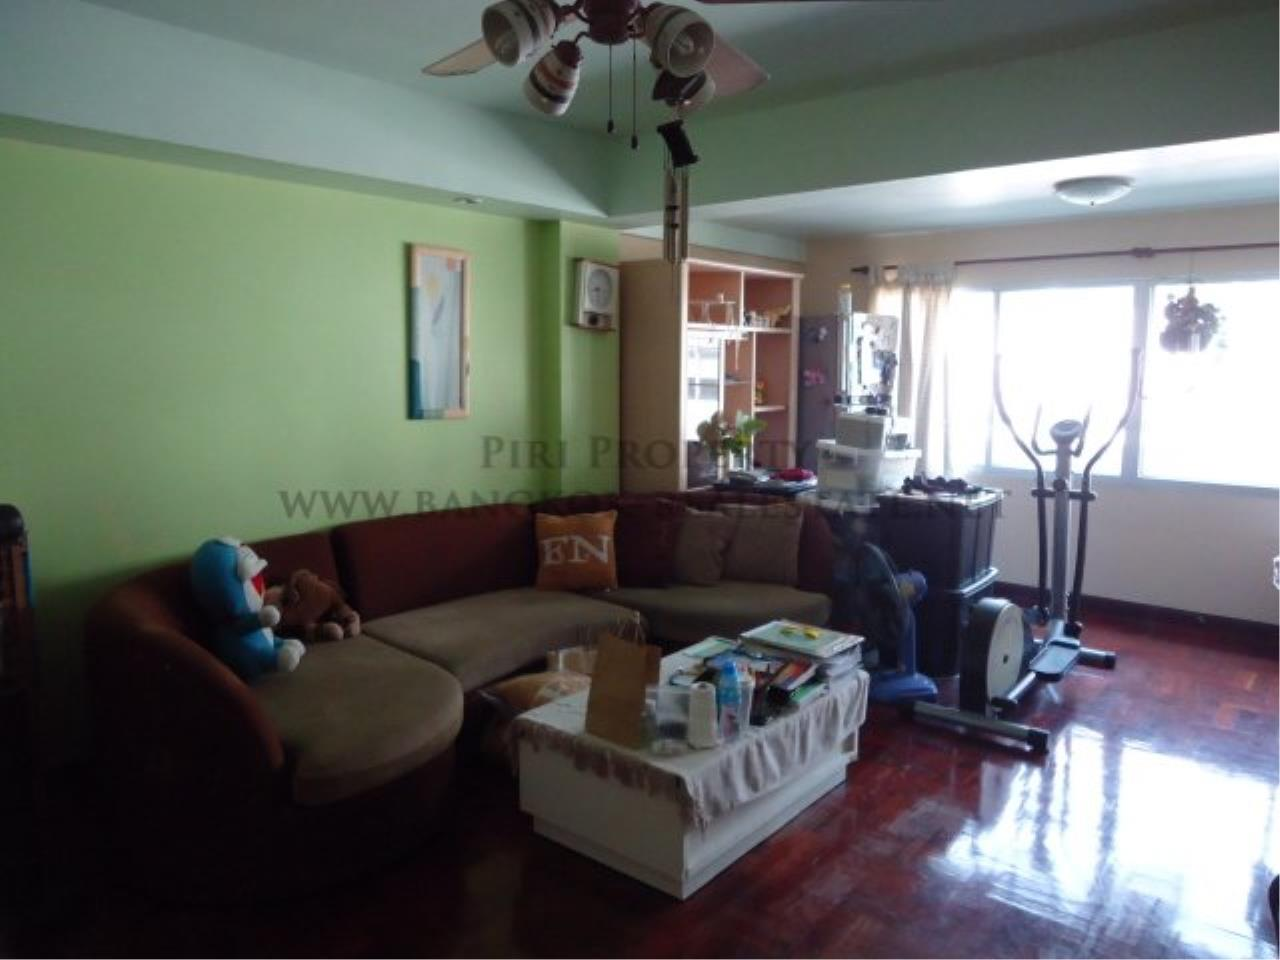 Piri Property Agency's Baan Sukhuthai - Spacious 1 Bed Condo for Sale - 65 SQM 1